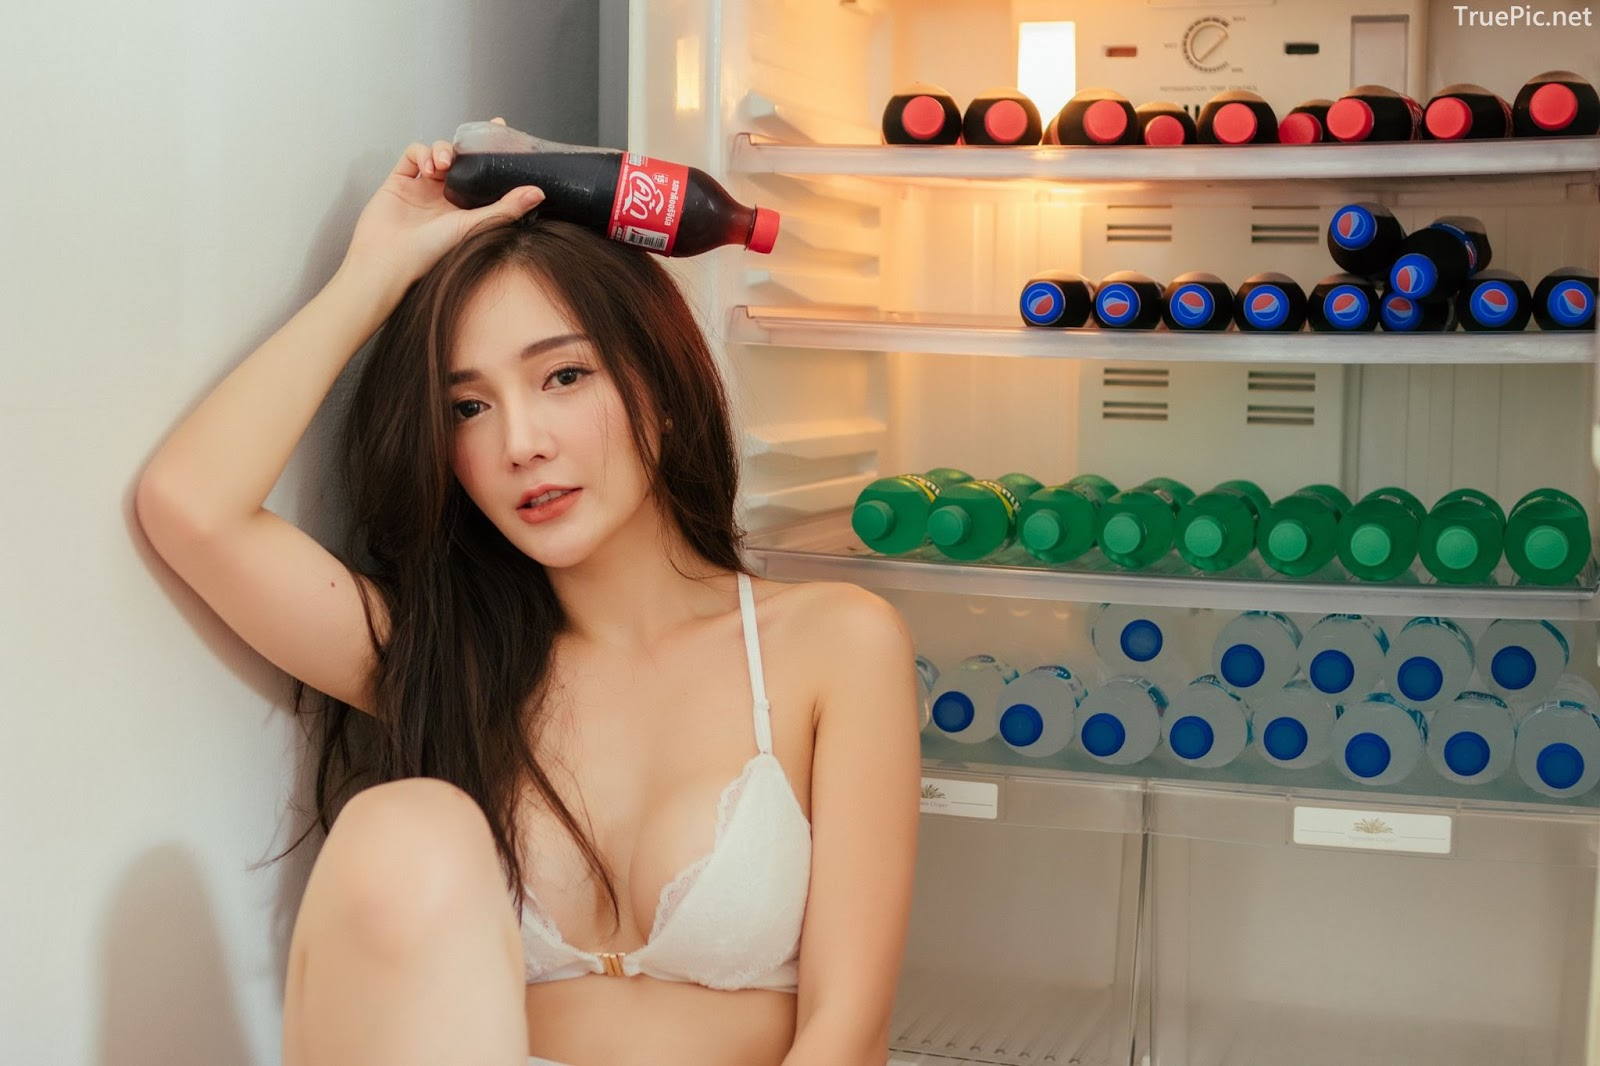 Thailand sexy model Rossarin Klinhom with photo album By your side - Picture 9